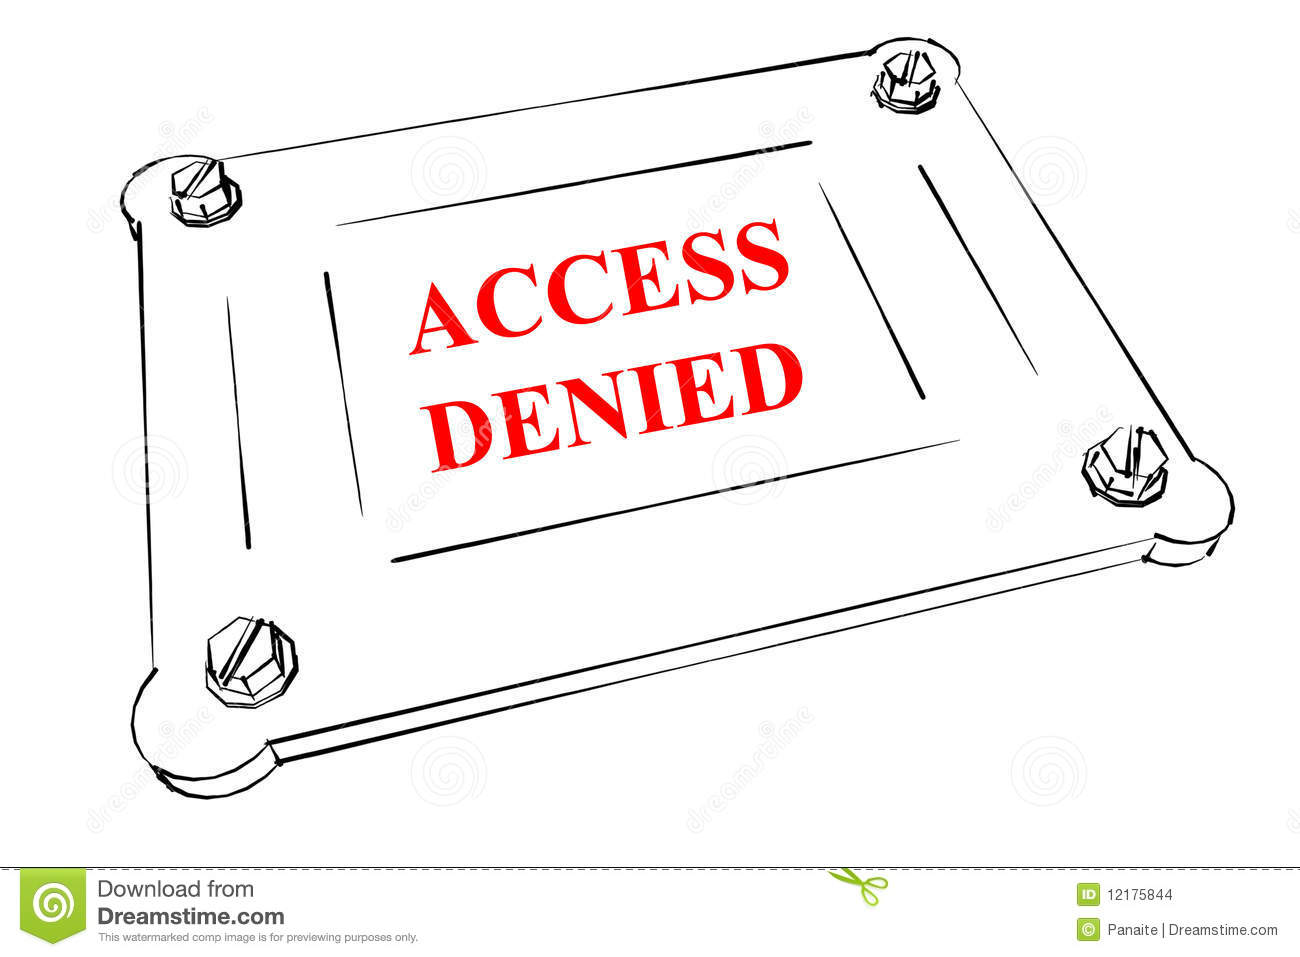 stock images  access denied board  image  12175844